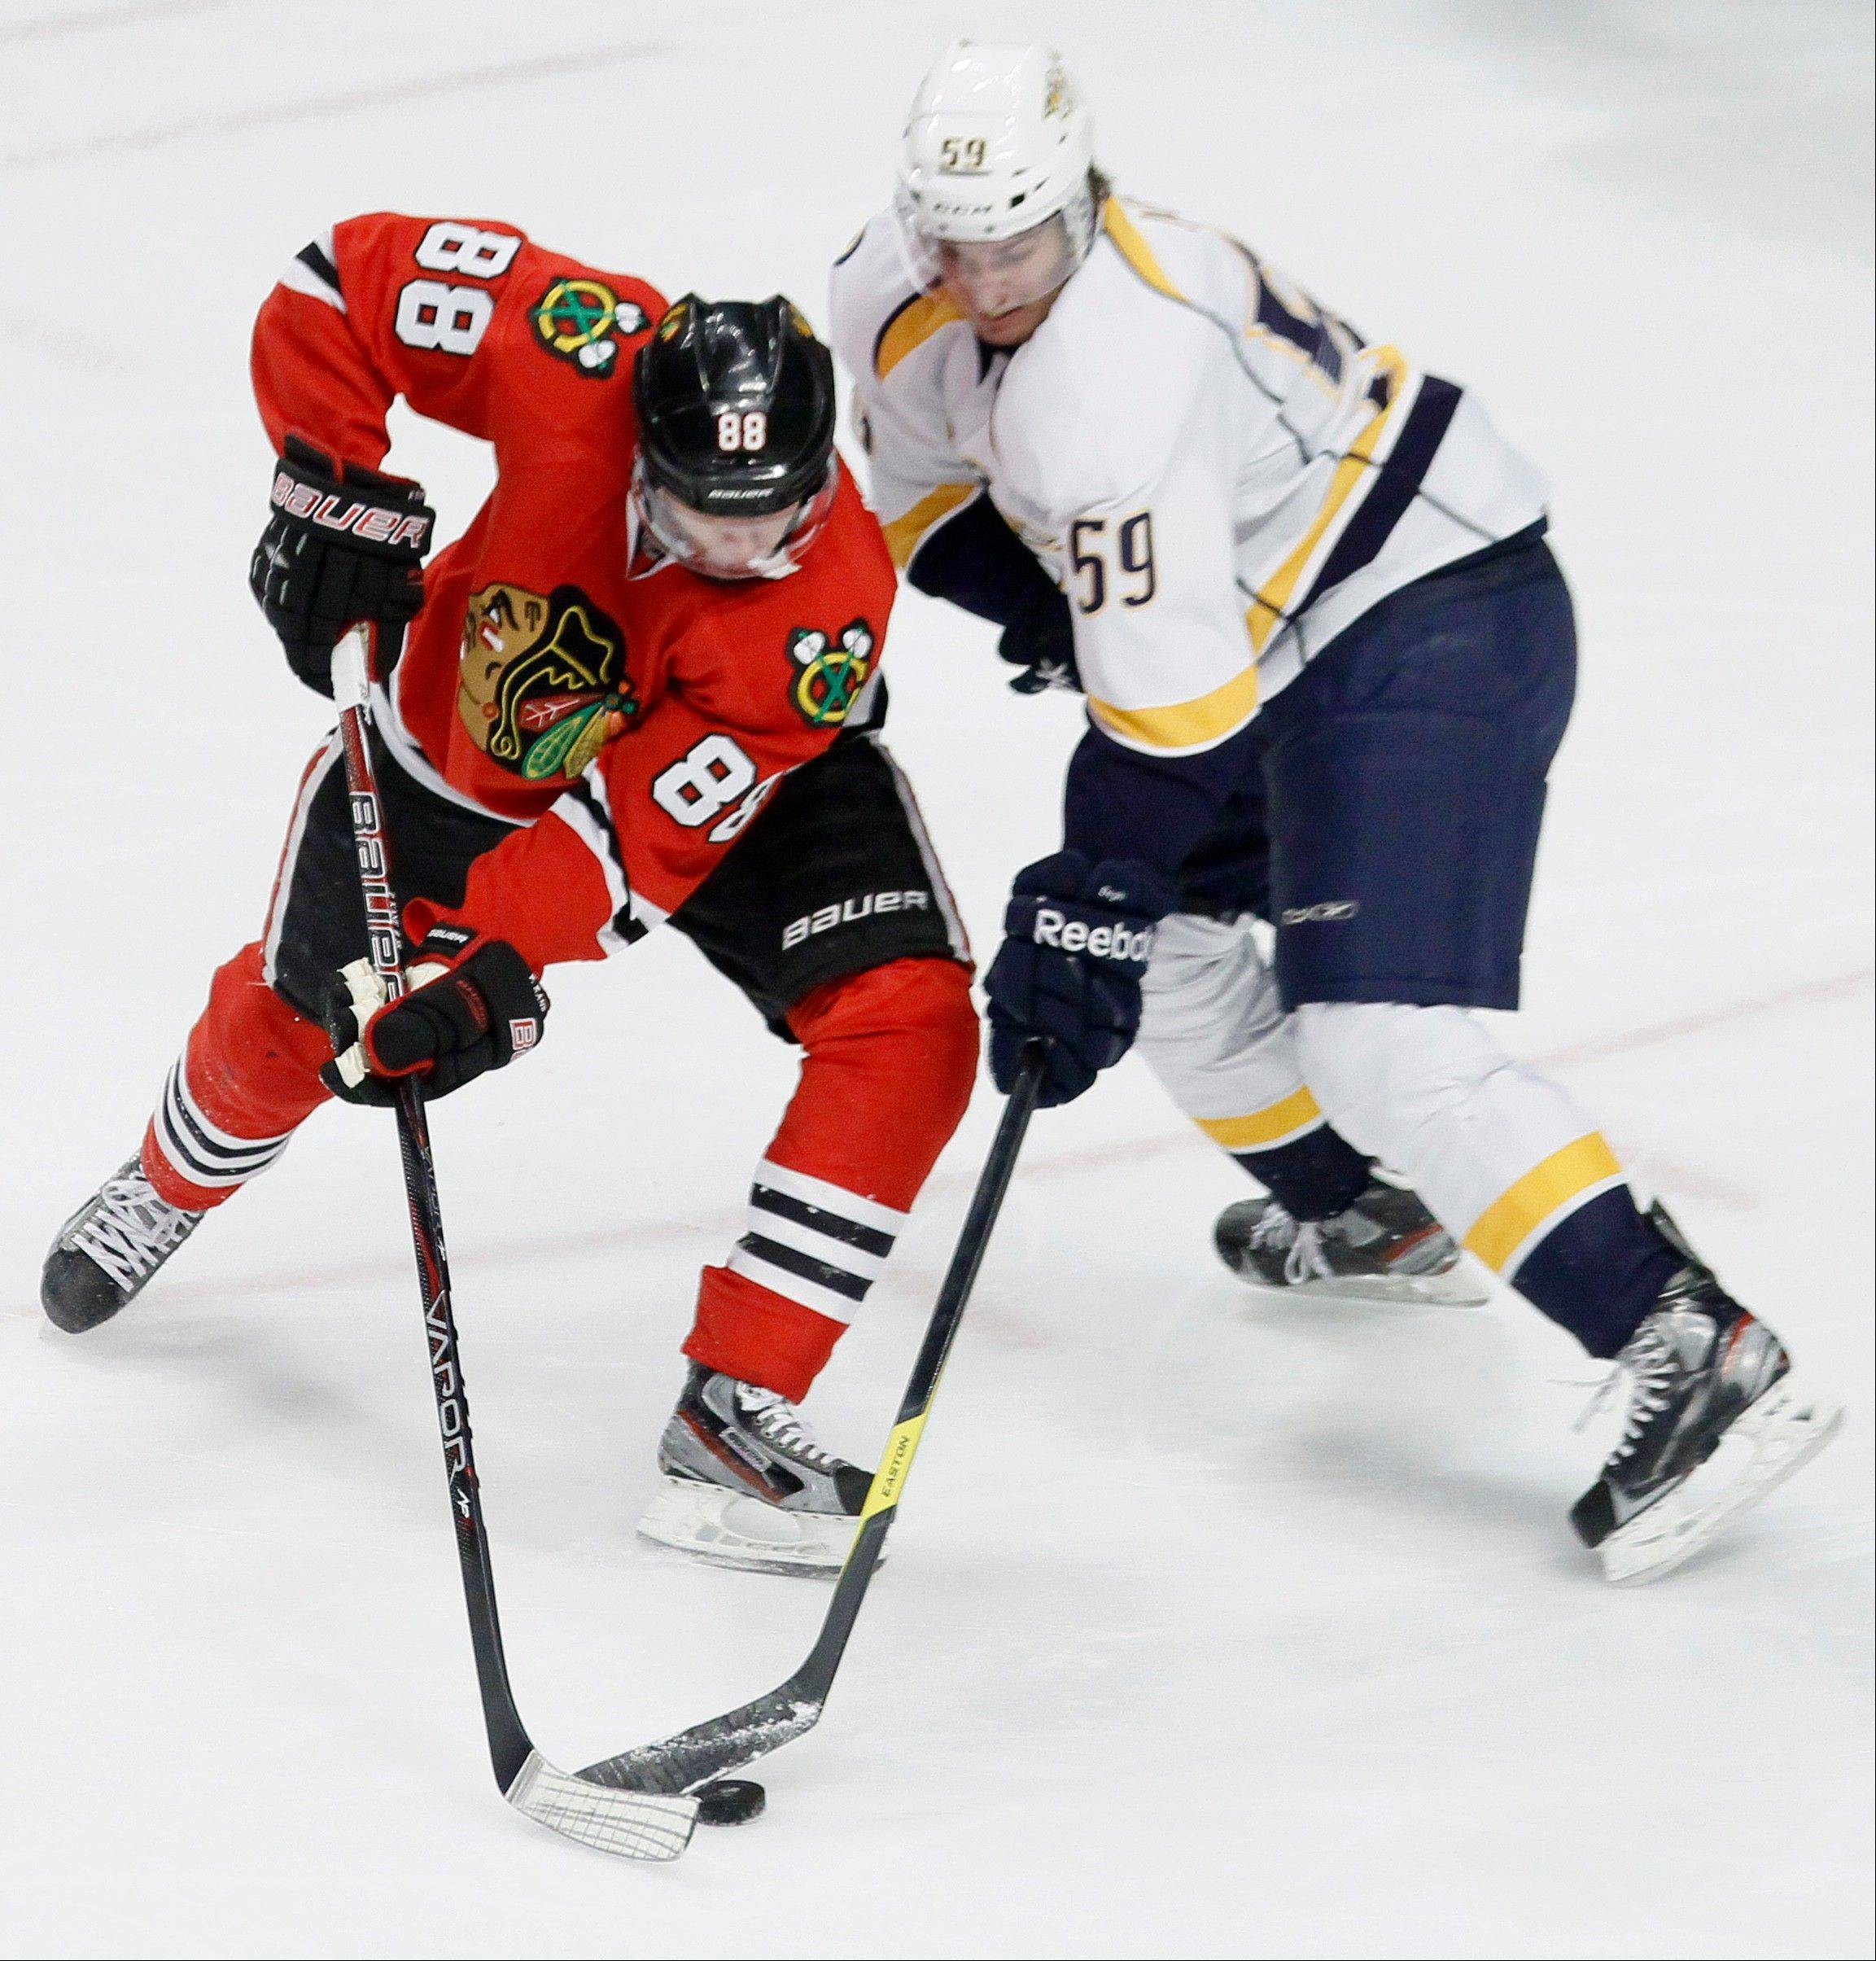 Chicago Blackhawks right wing Patrick Kane (88) takes a backhand shot on goal as Nashville Predators defenseman Roman Josi (59) reaches for the puck during the second period of Tuesday's game.